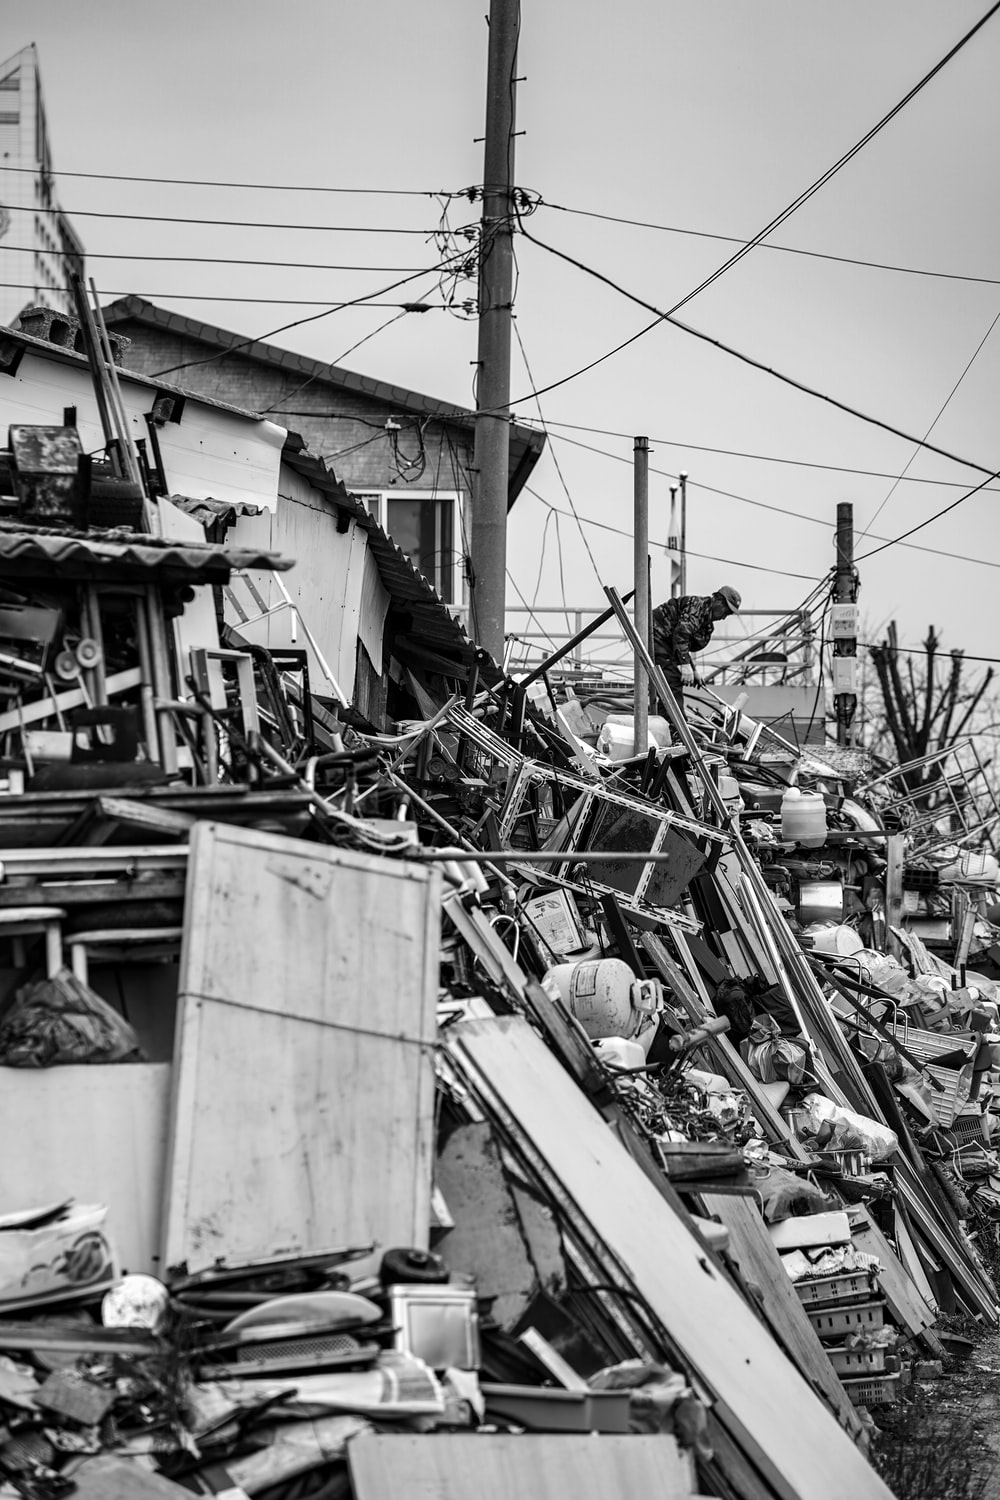 grayscale photography of wreckage of houses